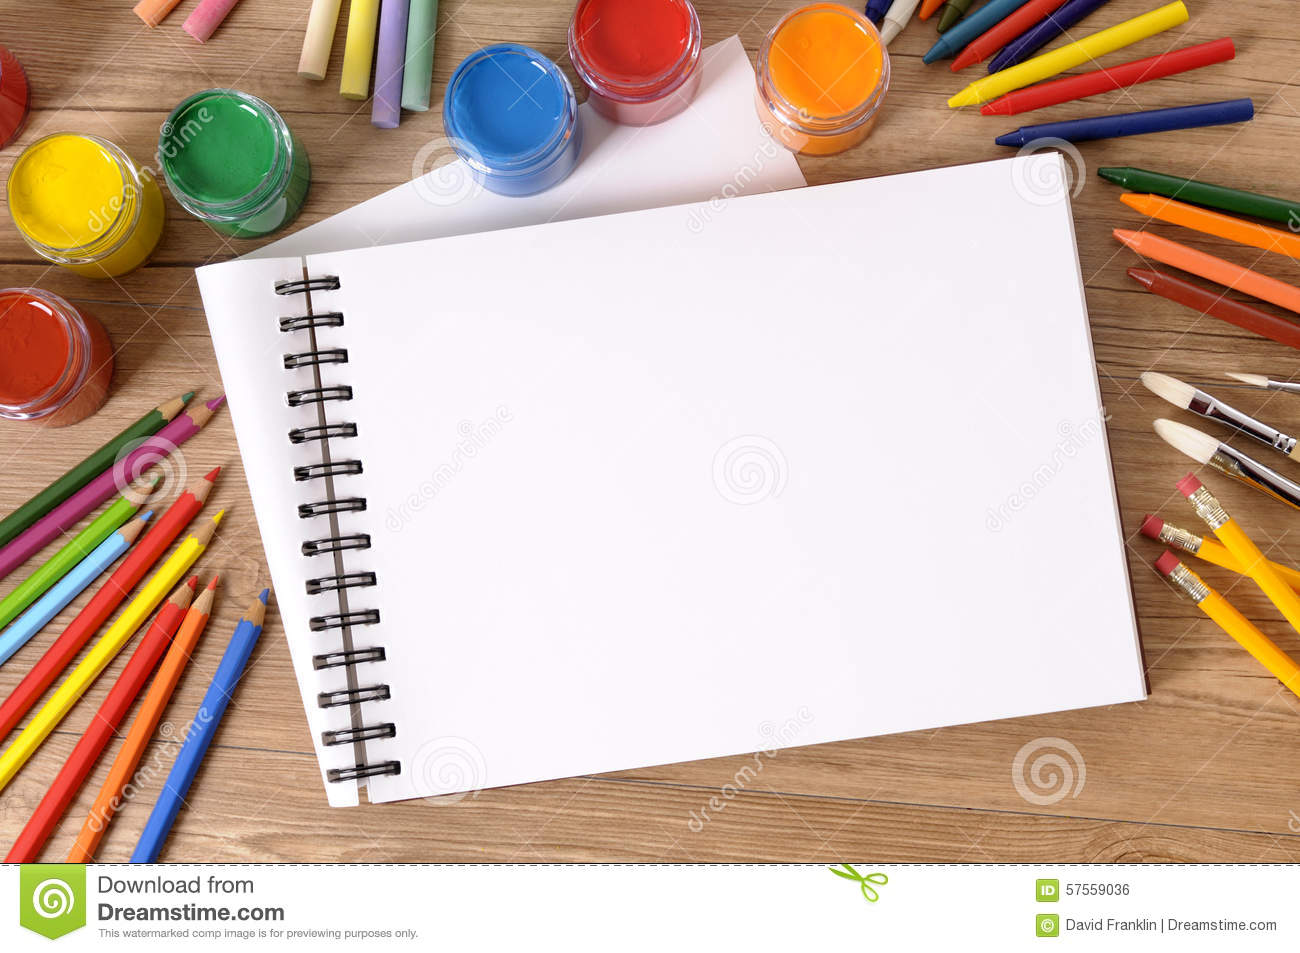 Blank Art Book Or Sketch Pad With Art Equipment Paints On School Desk Copy Space Stock Photo ...